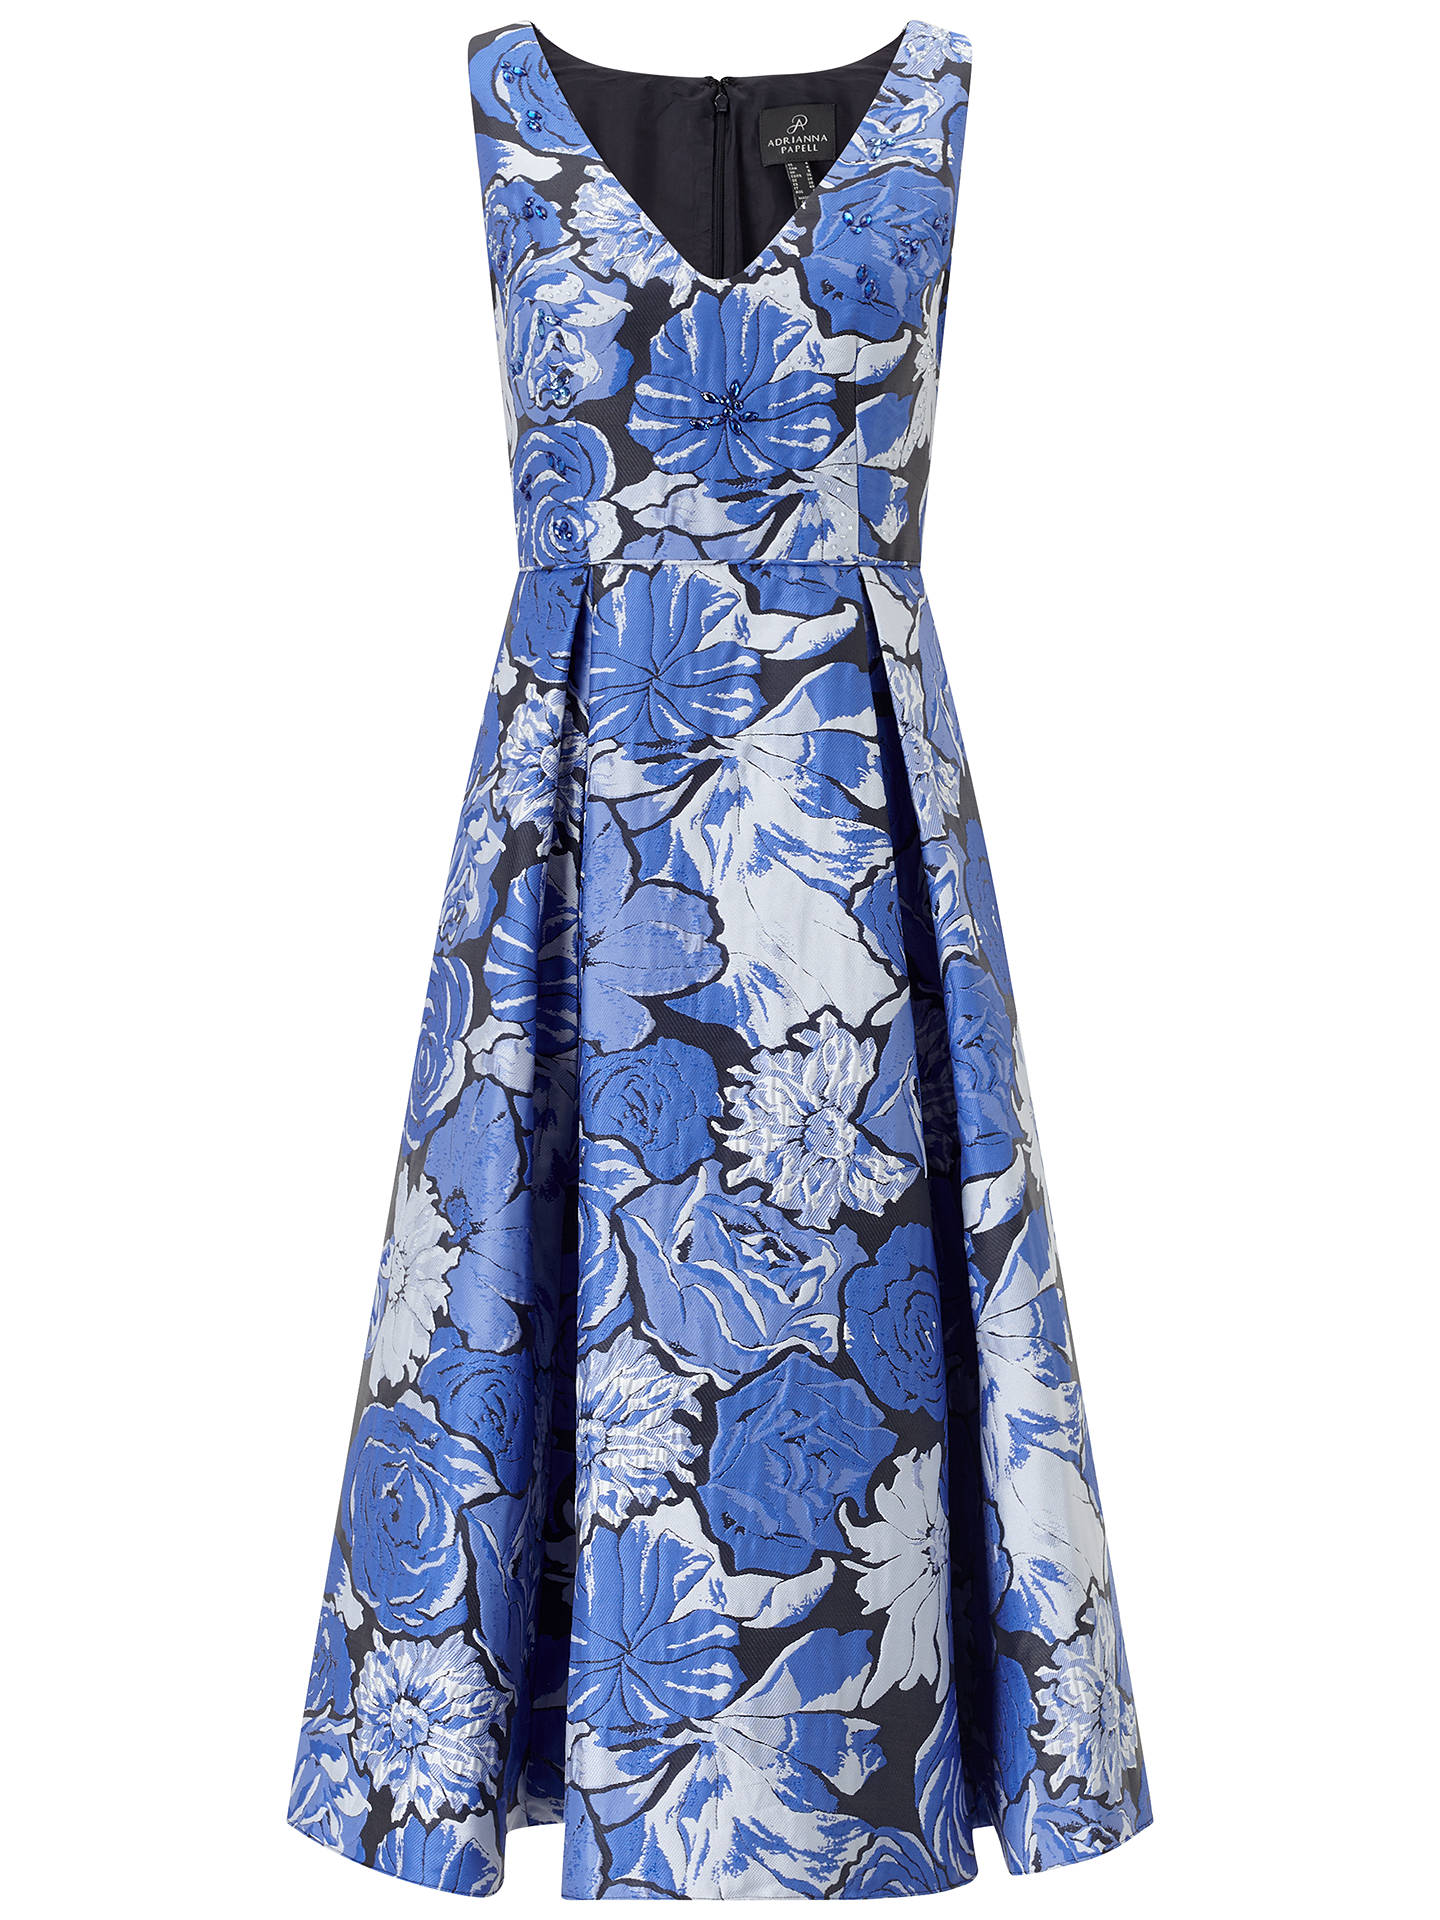 Buy Adrianna Papell Floral Jacquard Fit and Flare Dress, Blue/Multi, 8 Online at johnlewis.com